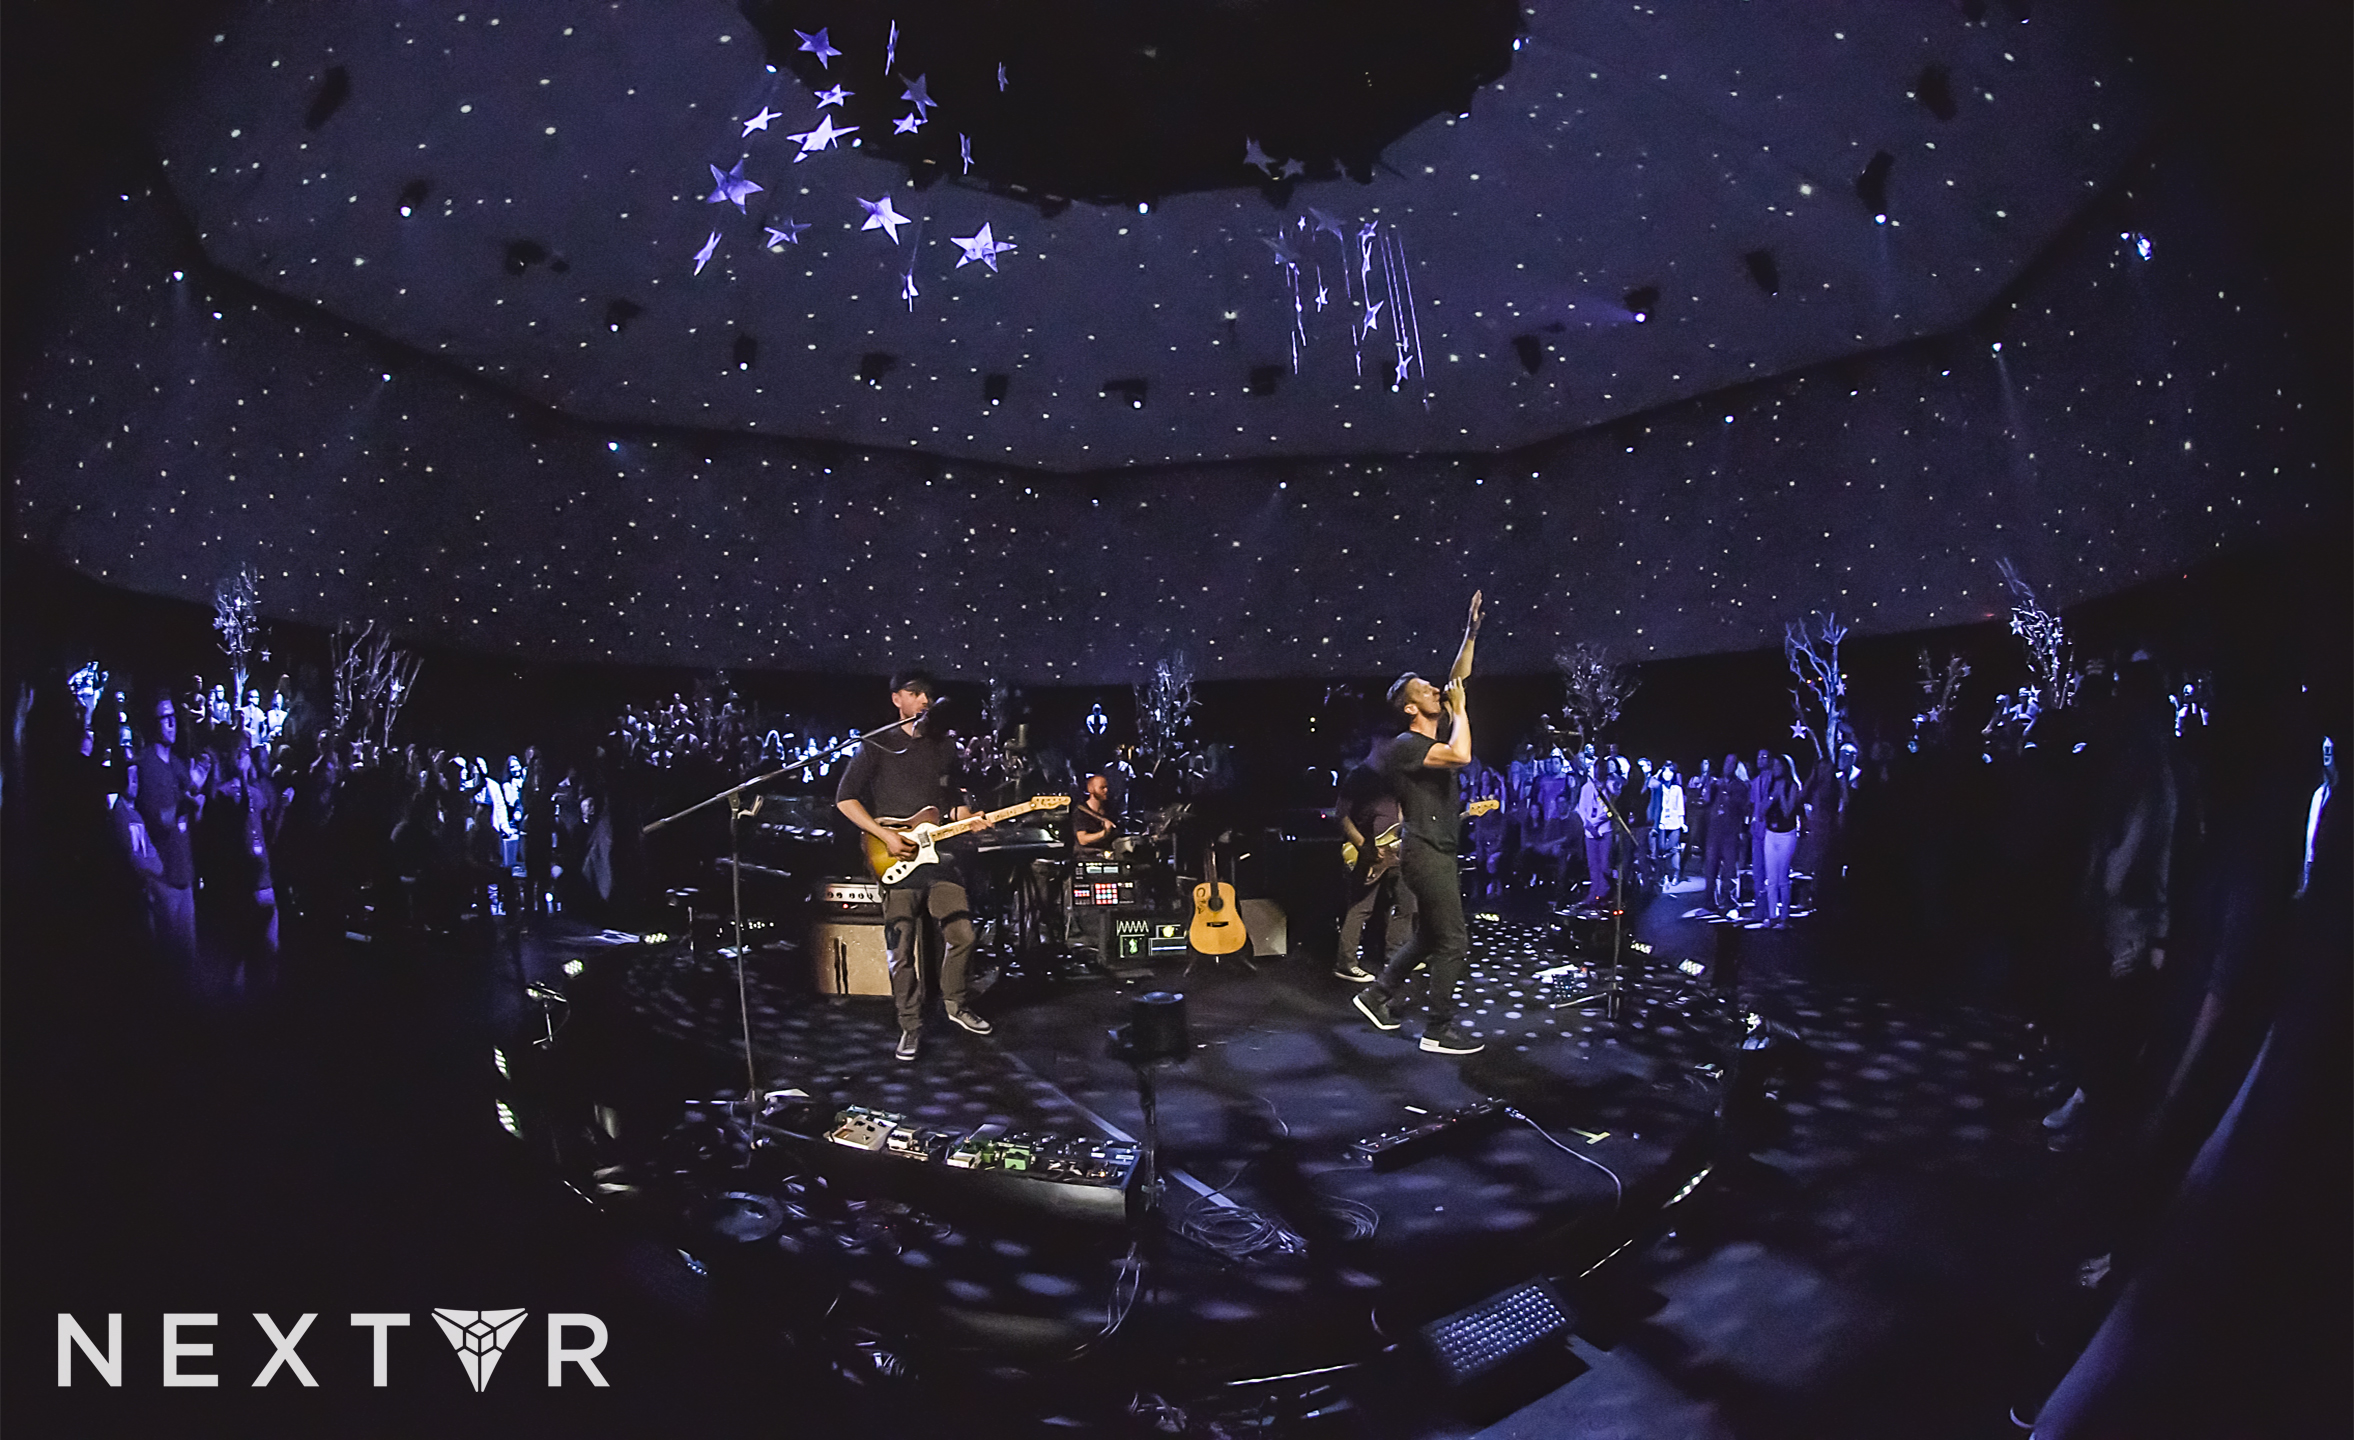 concert in full virtual reality